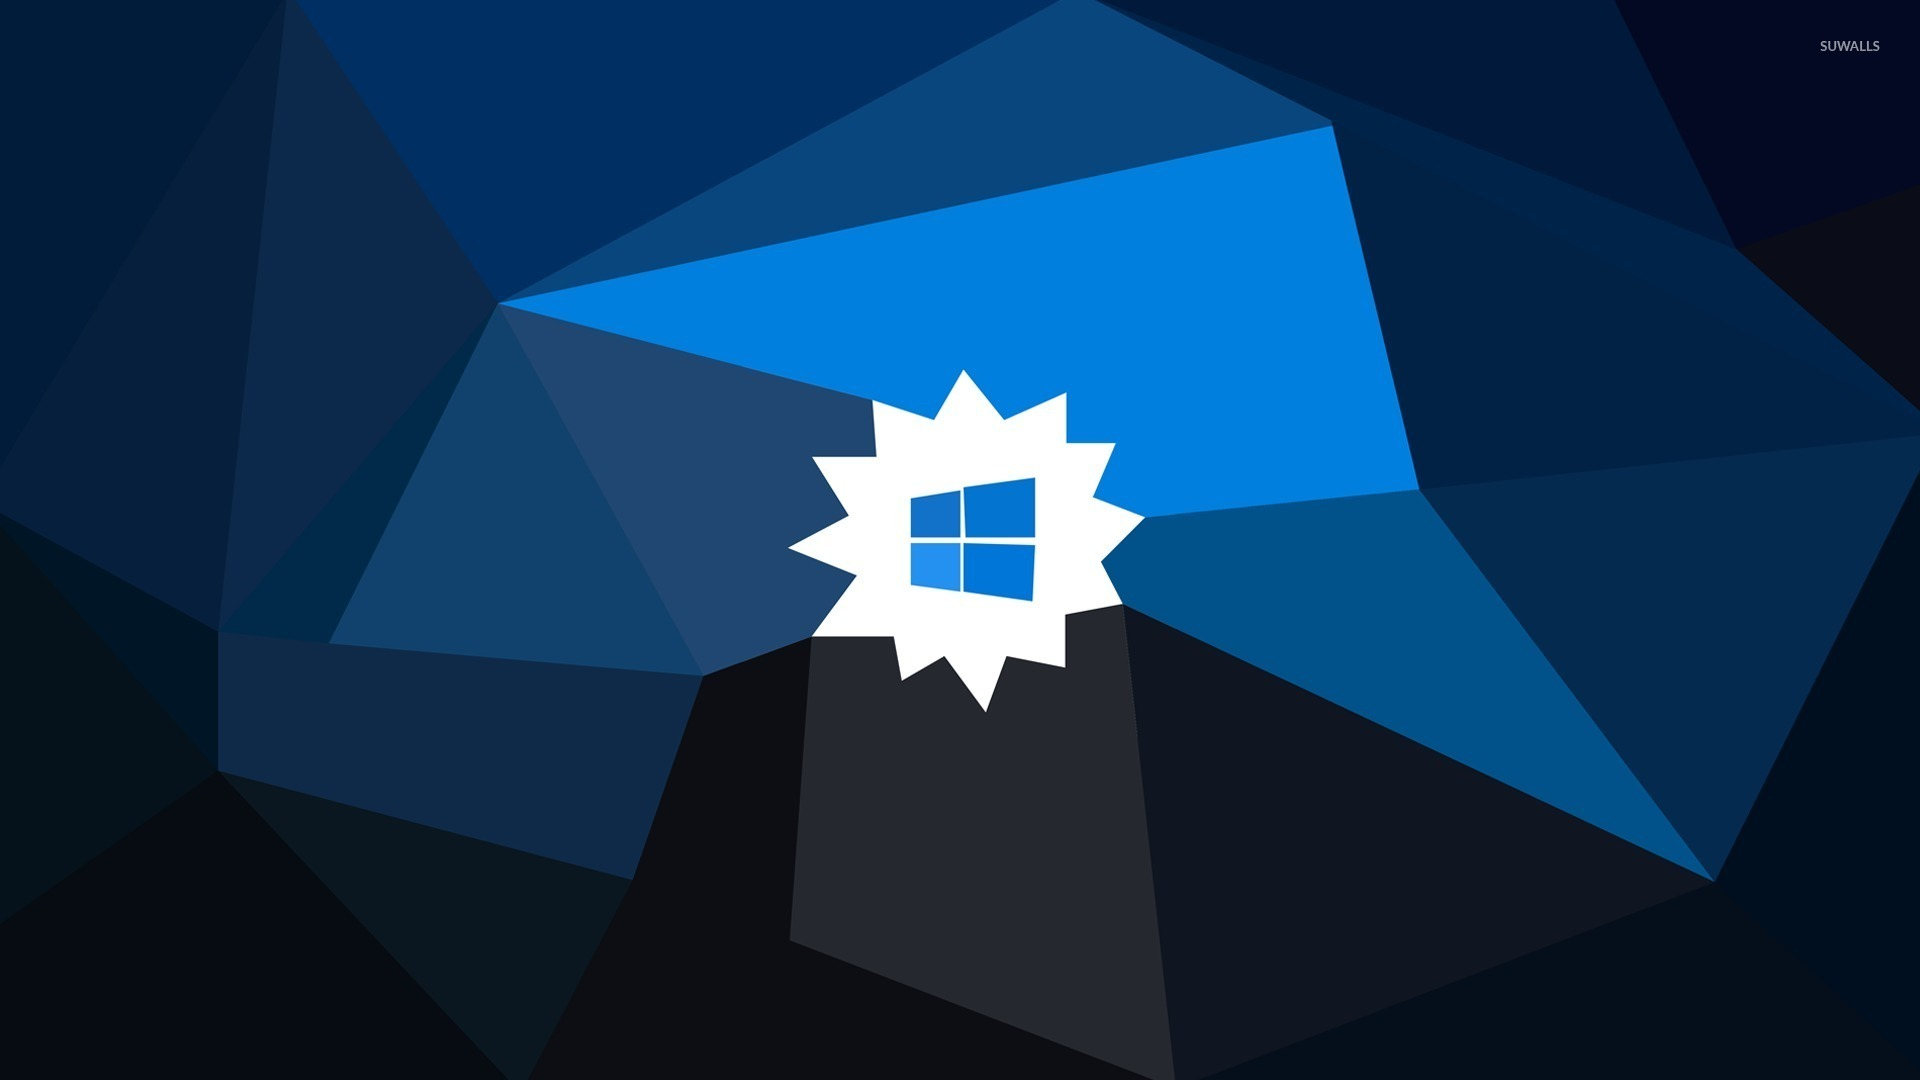 Blue Windows 10 On A White Blossom Wallpaper Computer Wallpapers